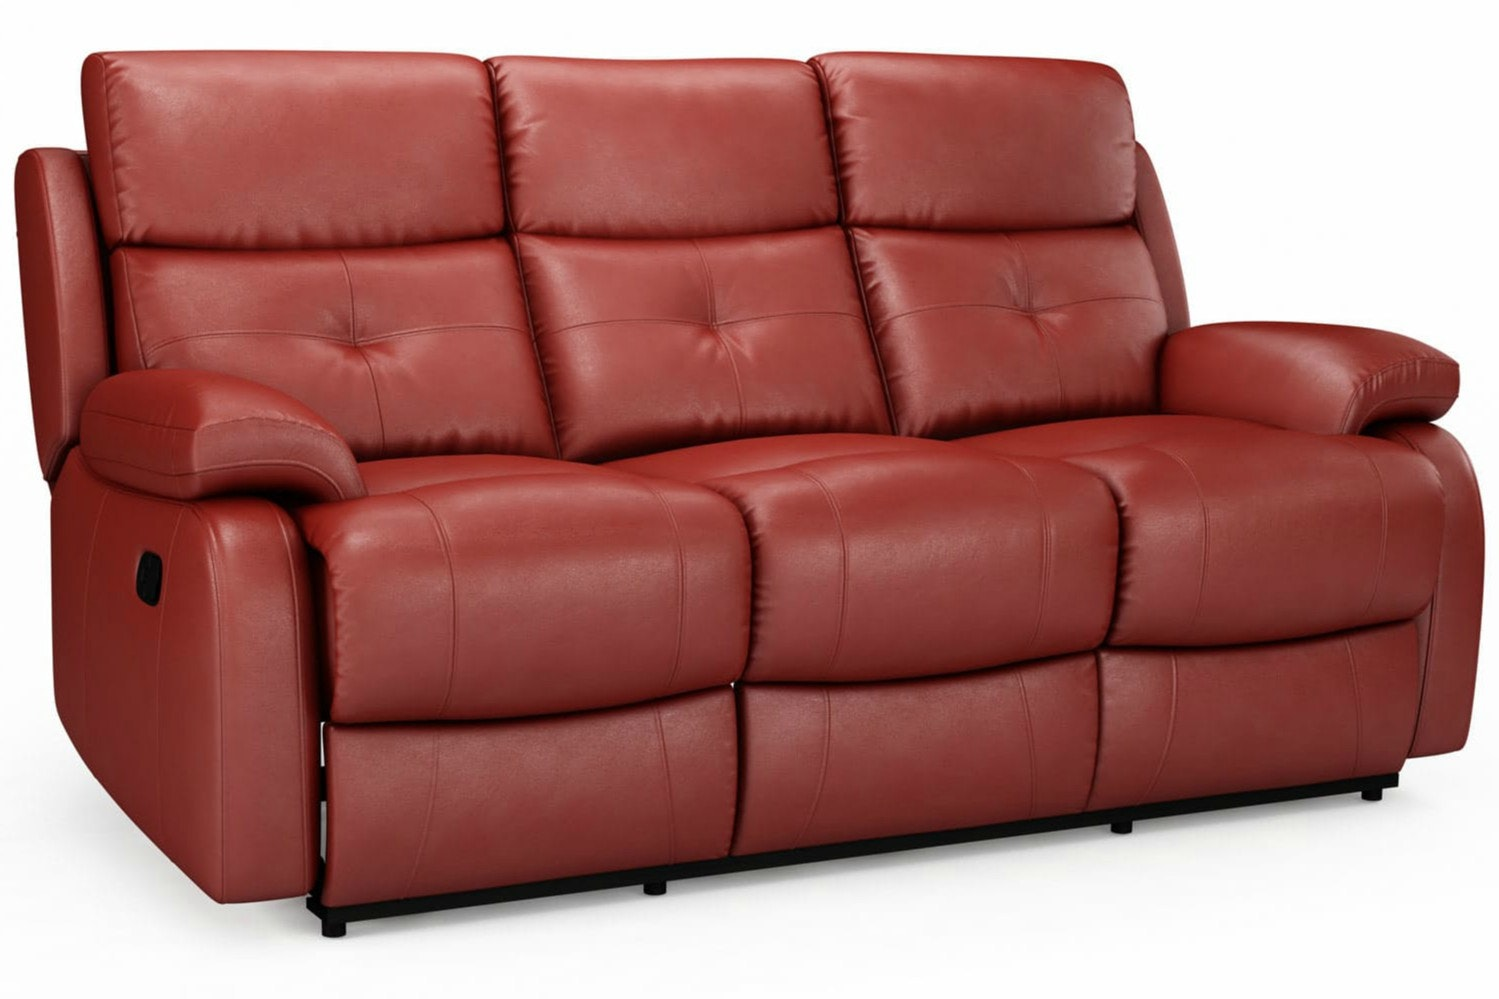 Mino 3 Seater Leather Recliner Sofa ...